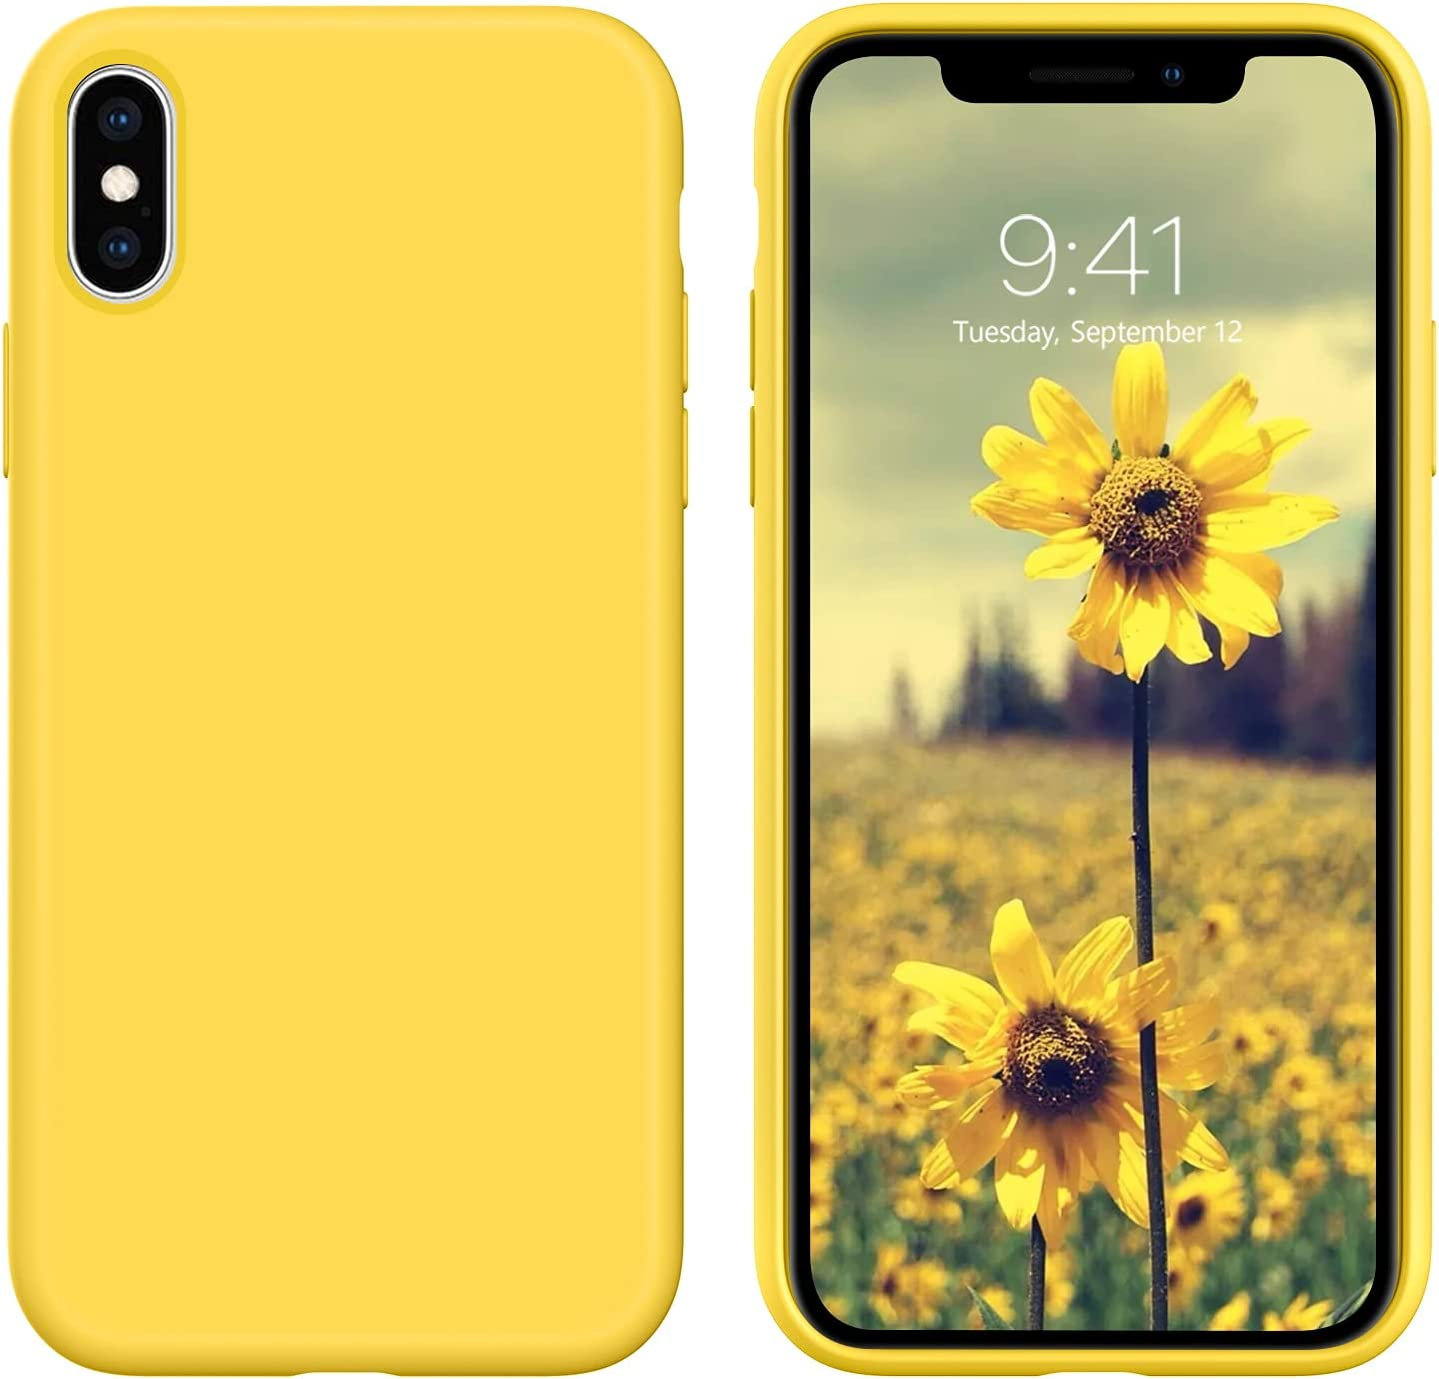 DUEDUE iPhone Xs Max Case, Liquid Silicone Soft Gel Rubber Slim Cover with Microfiber Cloth Lining Cushion Shockproof Full Protective Case for iPhone Xs Max for Women Girls, Yellow